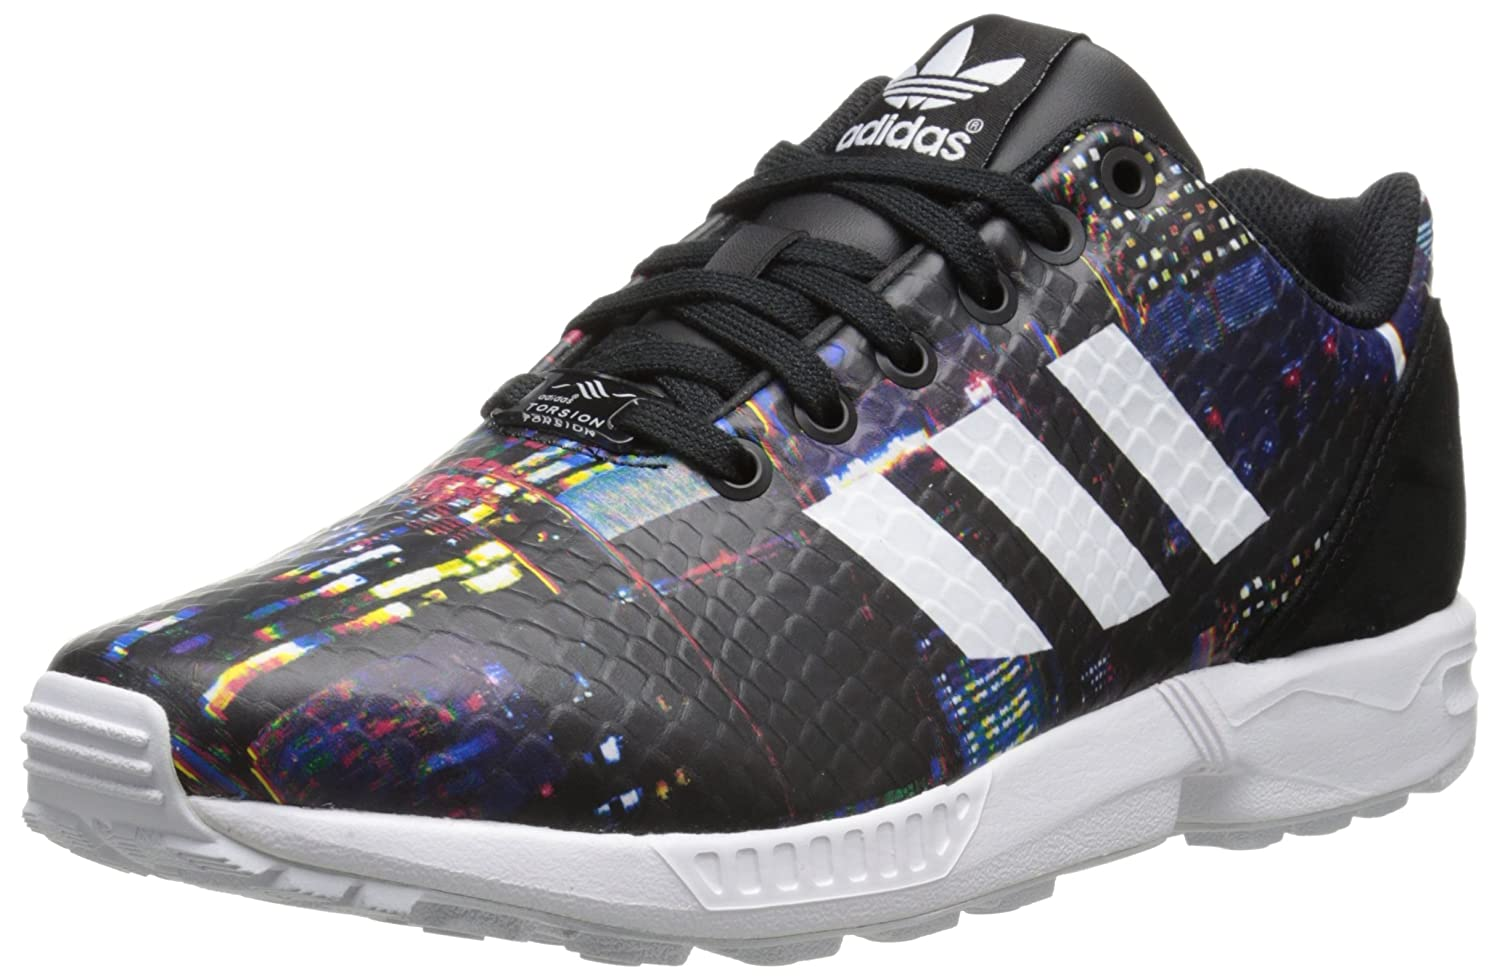 adidas Originals Women's ZX Flux W Lace-Up Fashion Sneaker B00LLSE9Q6 7 M US|Core Black/White/Black